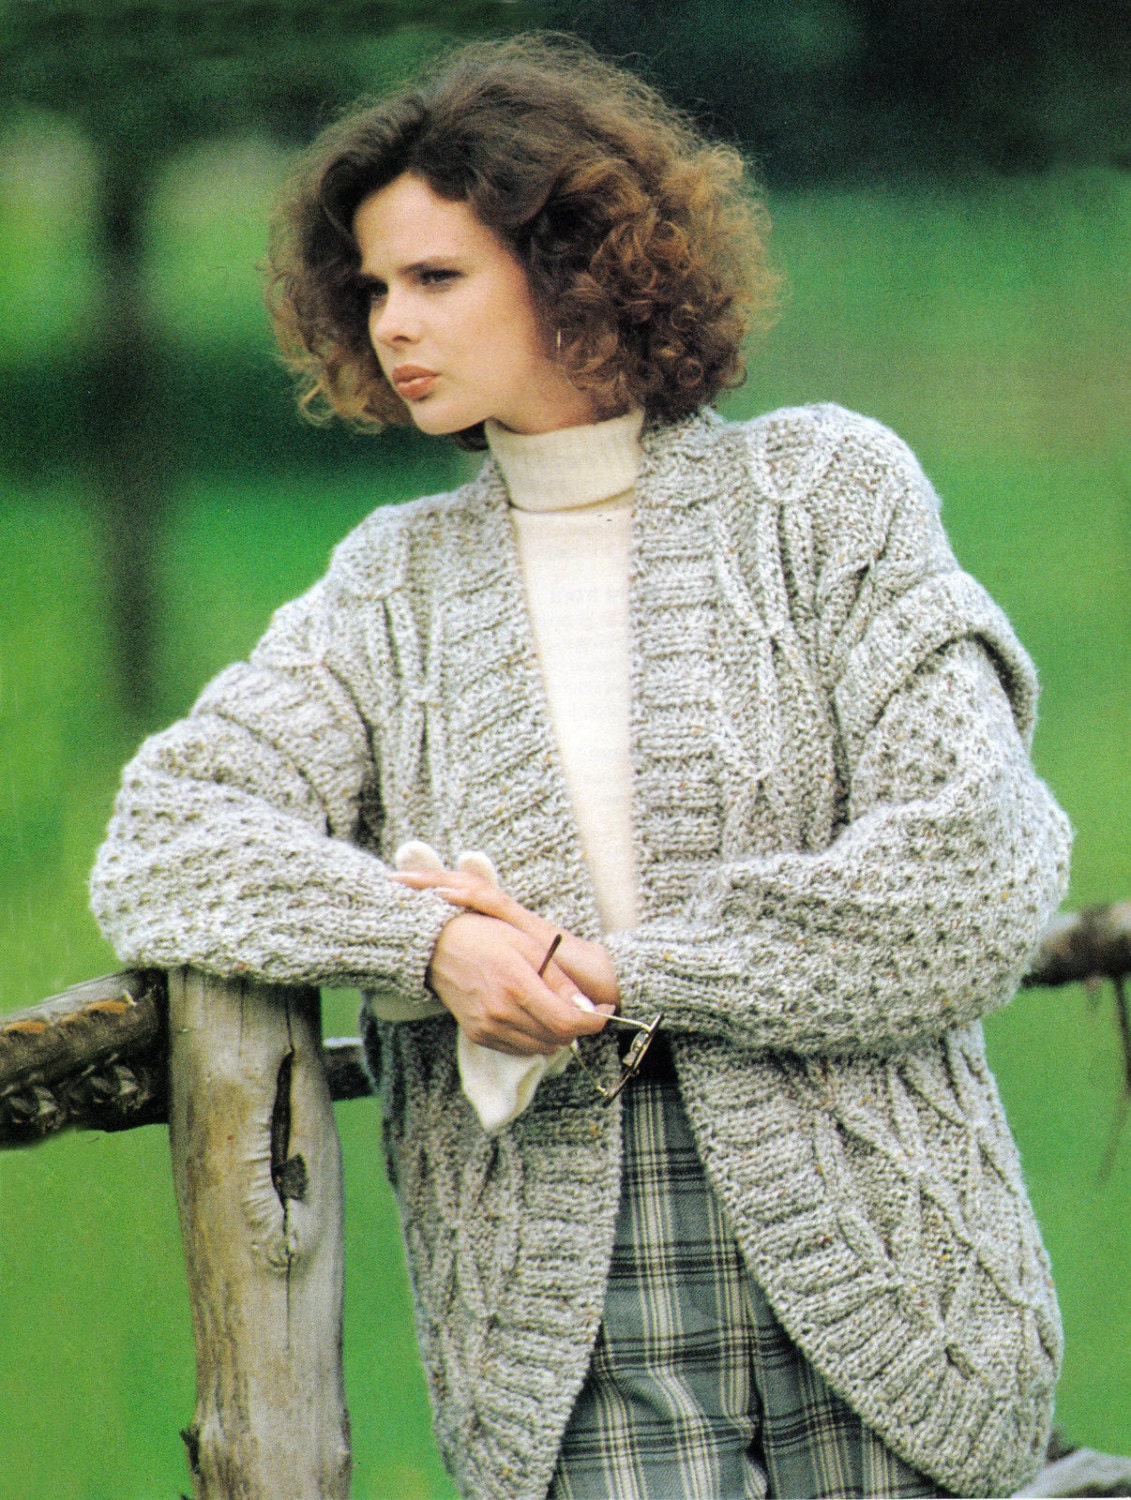 056d6473896c Instant Digital Download PDF Vintage Row by Row Knitting Pattern to make  Ladies Chunky Honeycomb   Smock Cardigan Jacket Bust 34-38